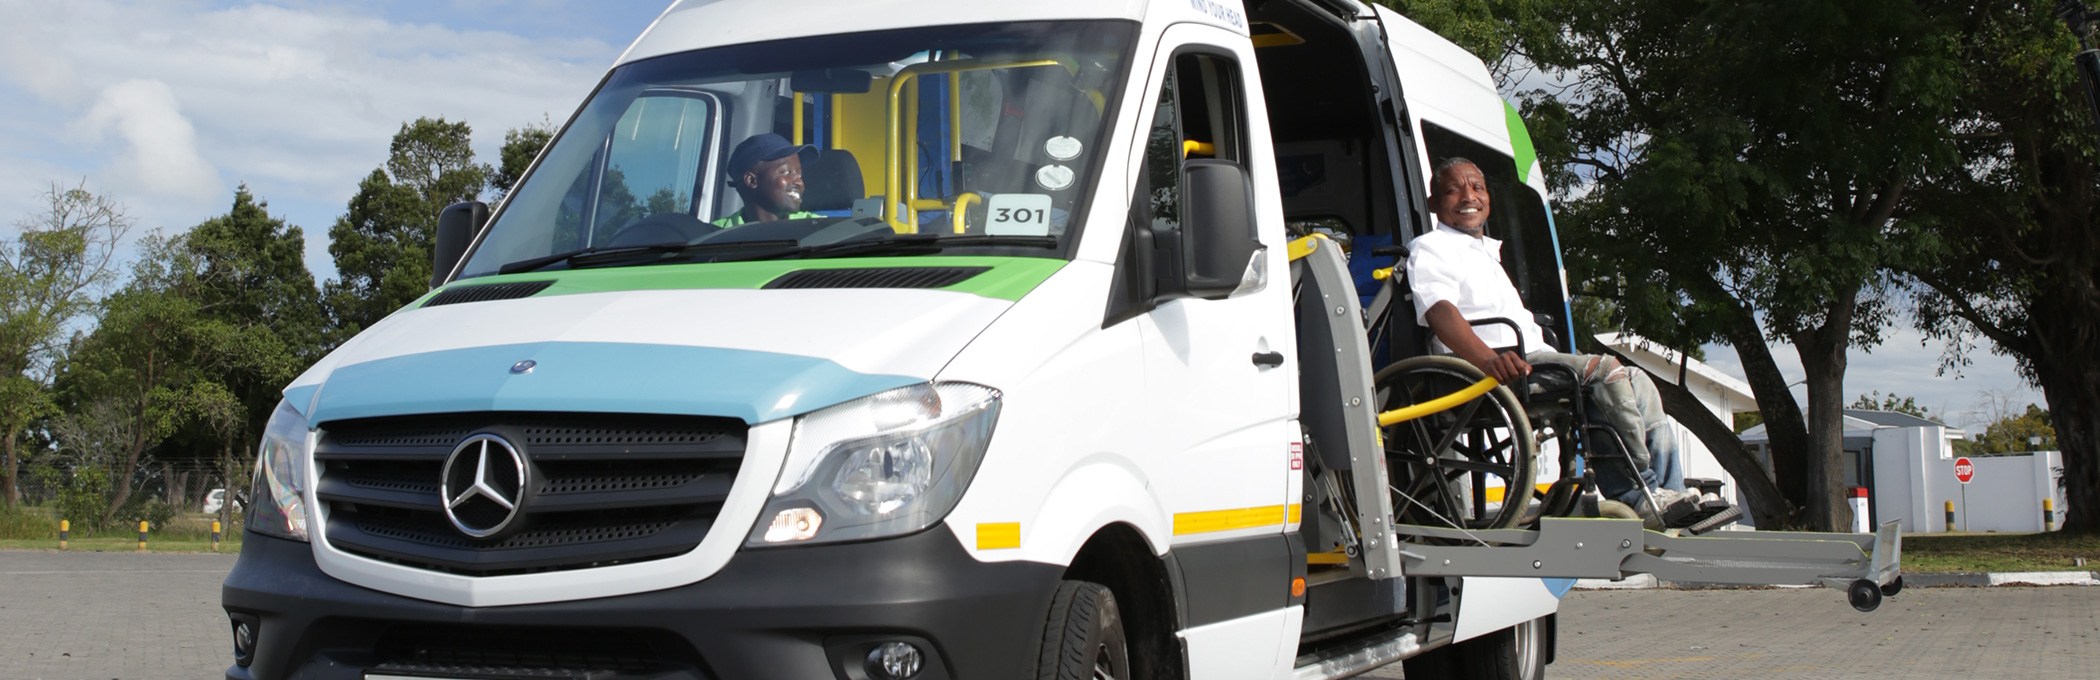 Photo of a passenger in a wheelchair being hoisted into the minibus by an electronic hoist.